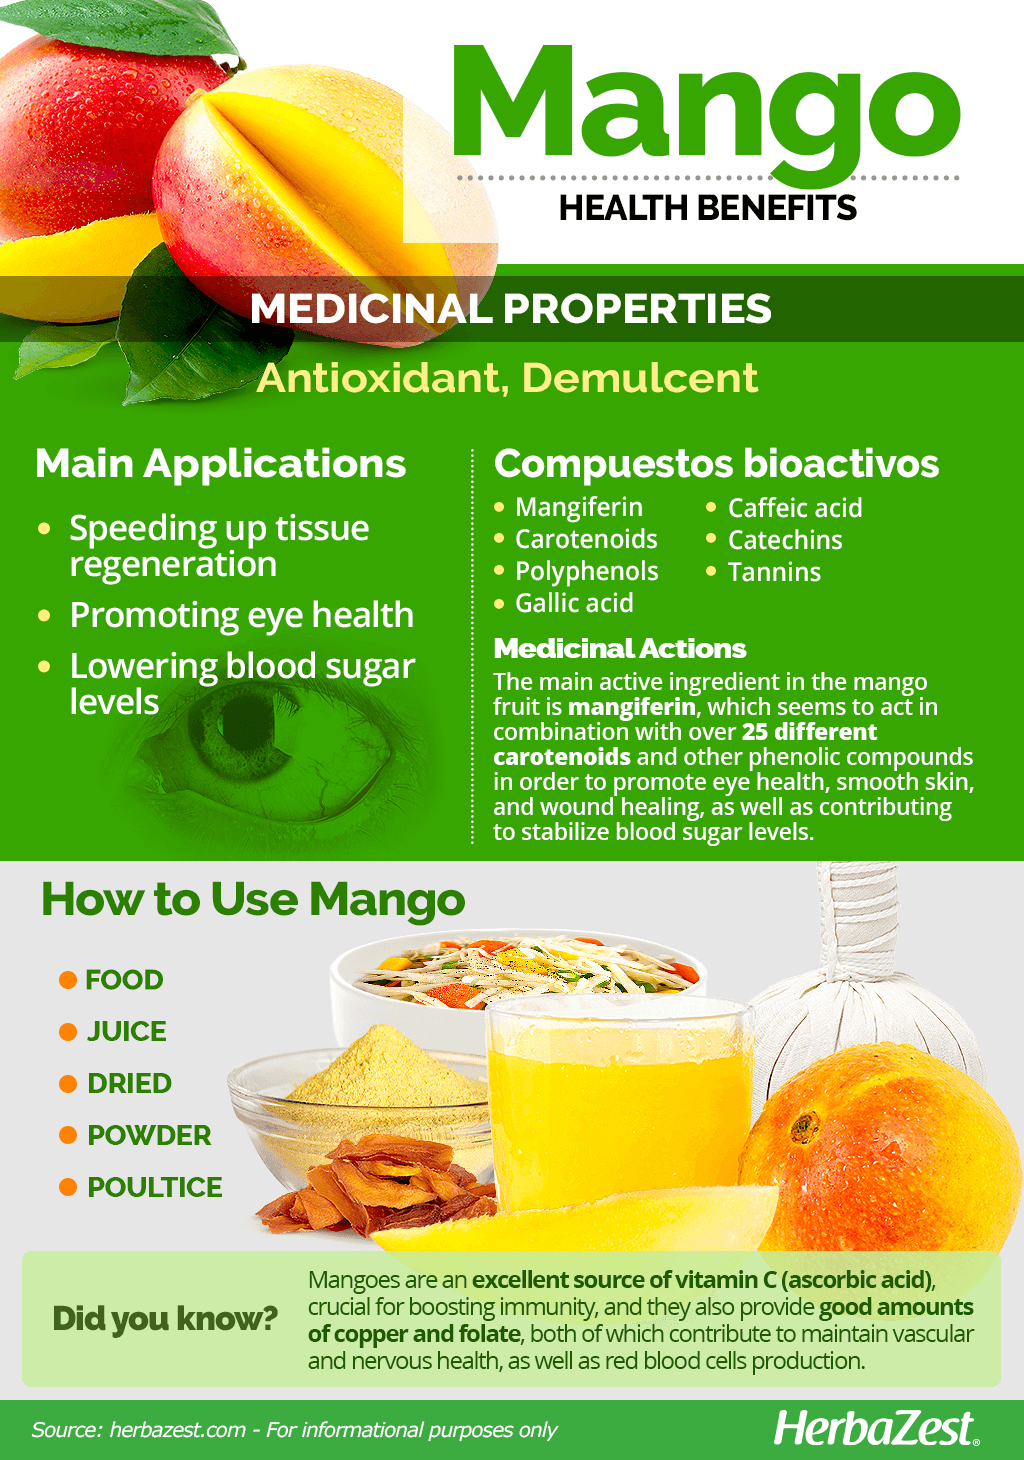 All About Mango